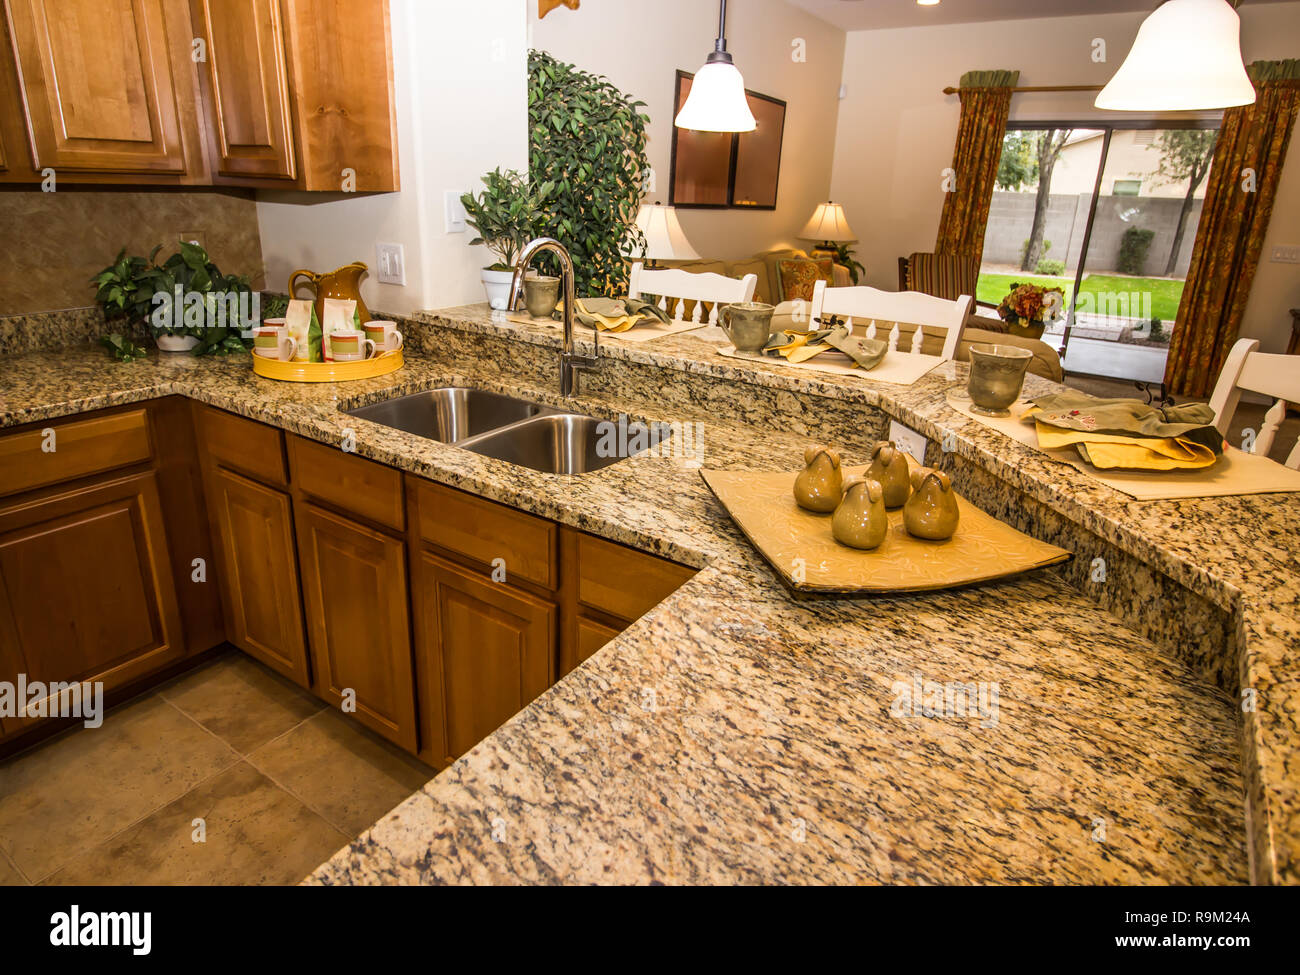 Surprising Granite Counter Kitchen With Place Settings And Bar Stools Alphanode Cool Chair Designs And Ideas Alphanodeonline